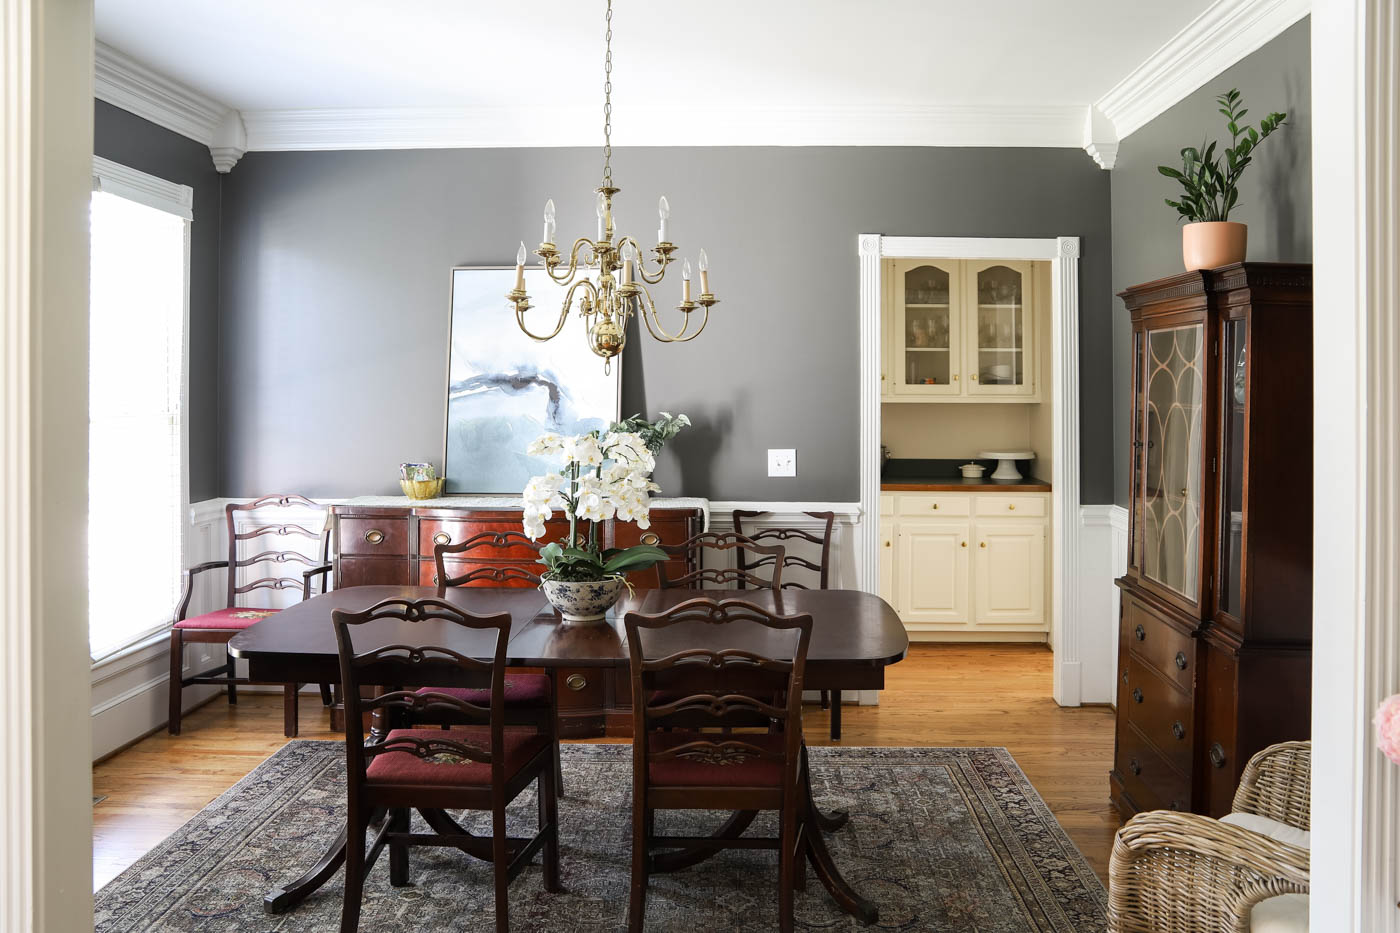 Dining Room with antique wood furniture